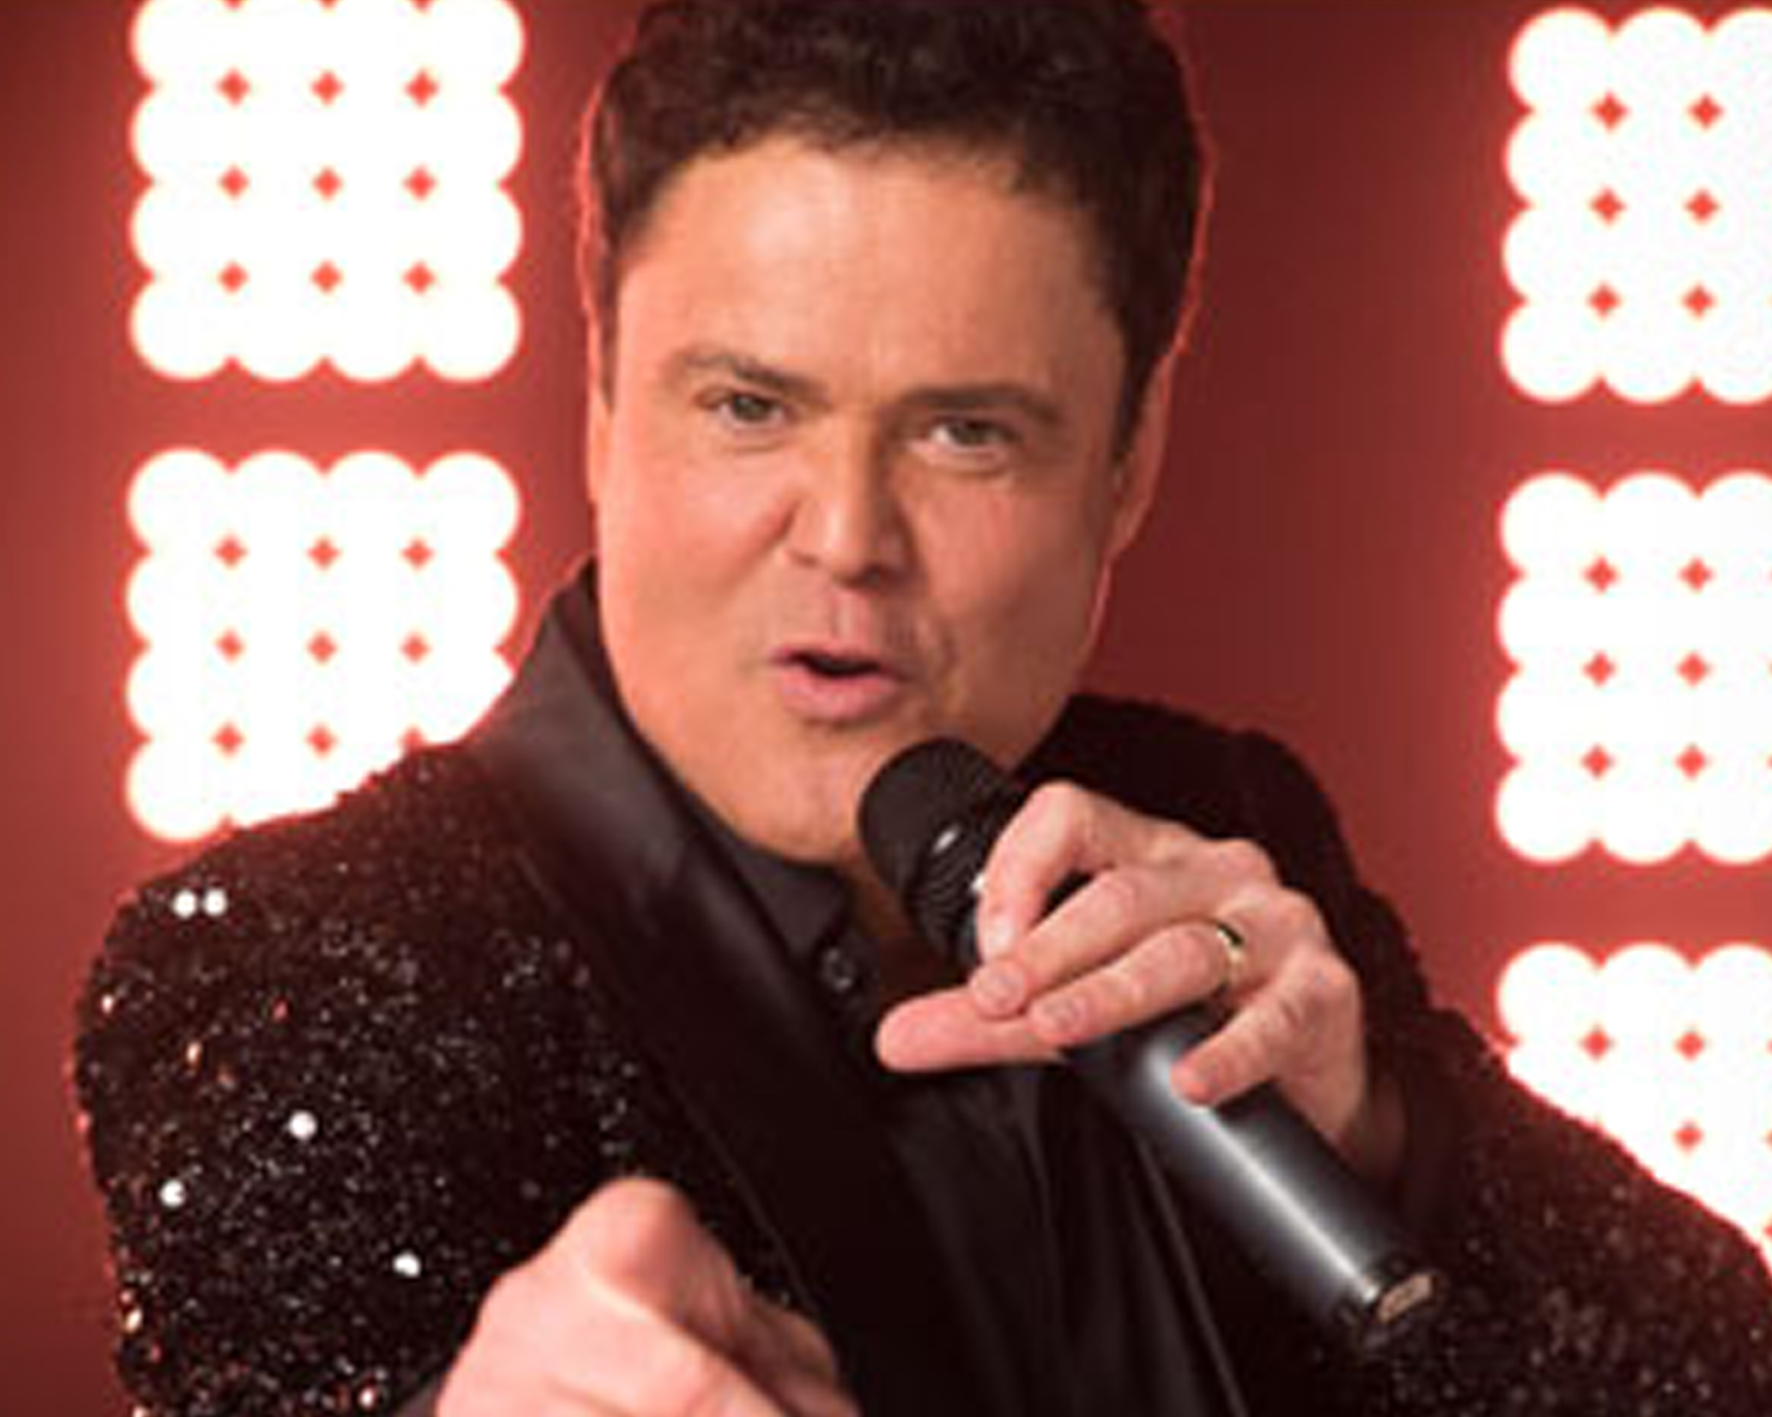 Donny Osmond singing into microphone - View Donny Osmond ecard